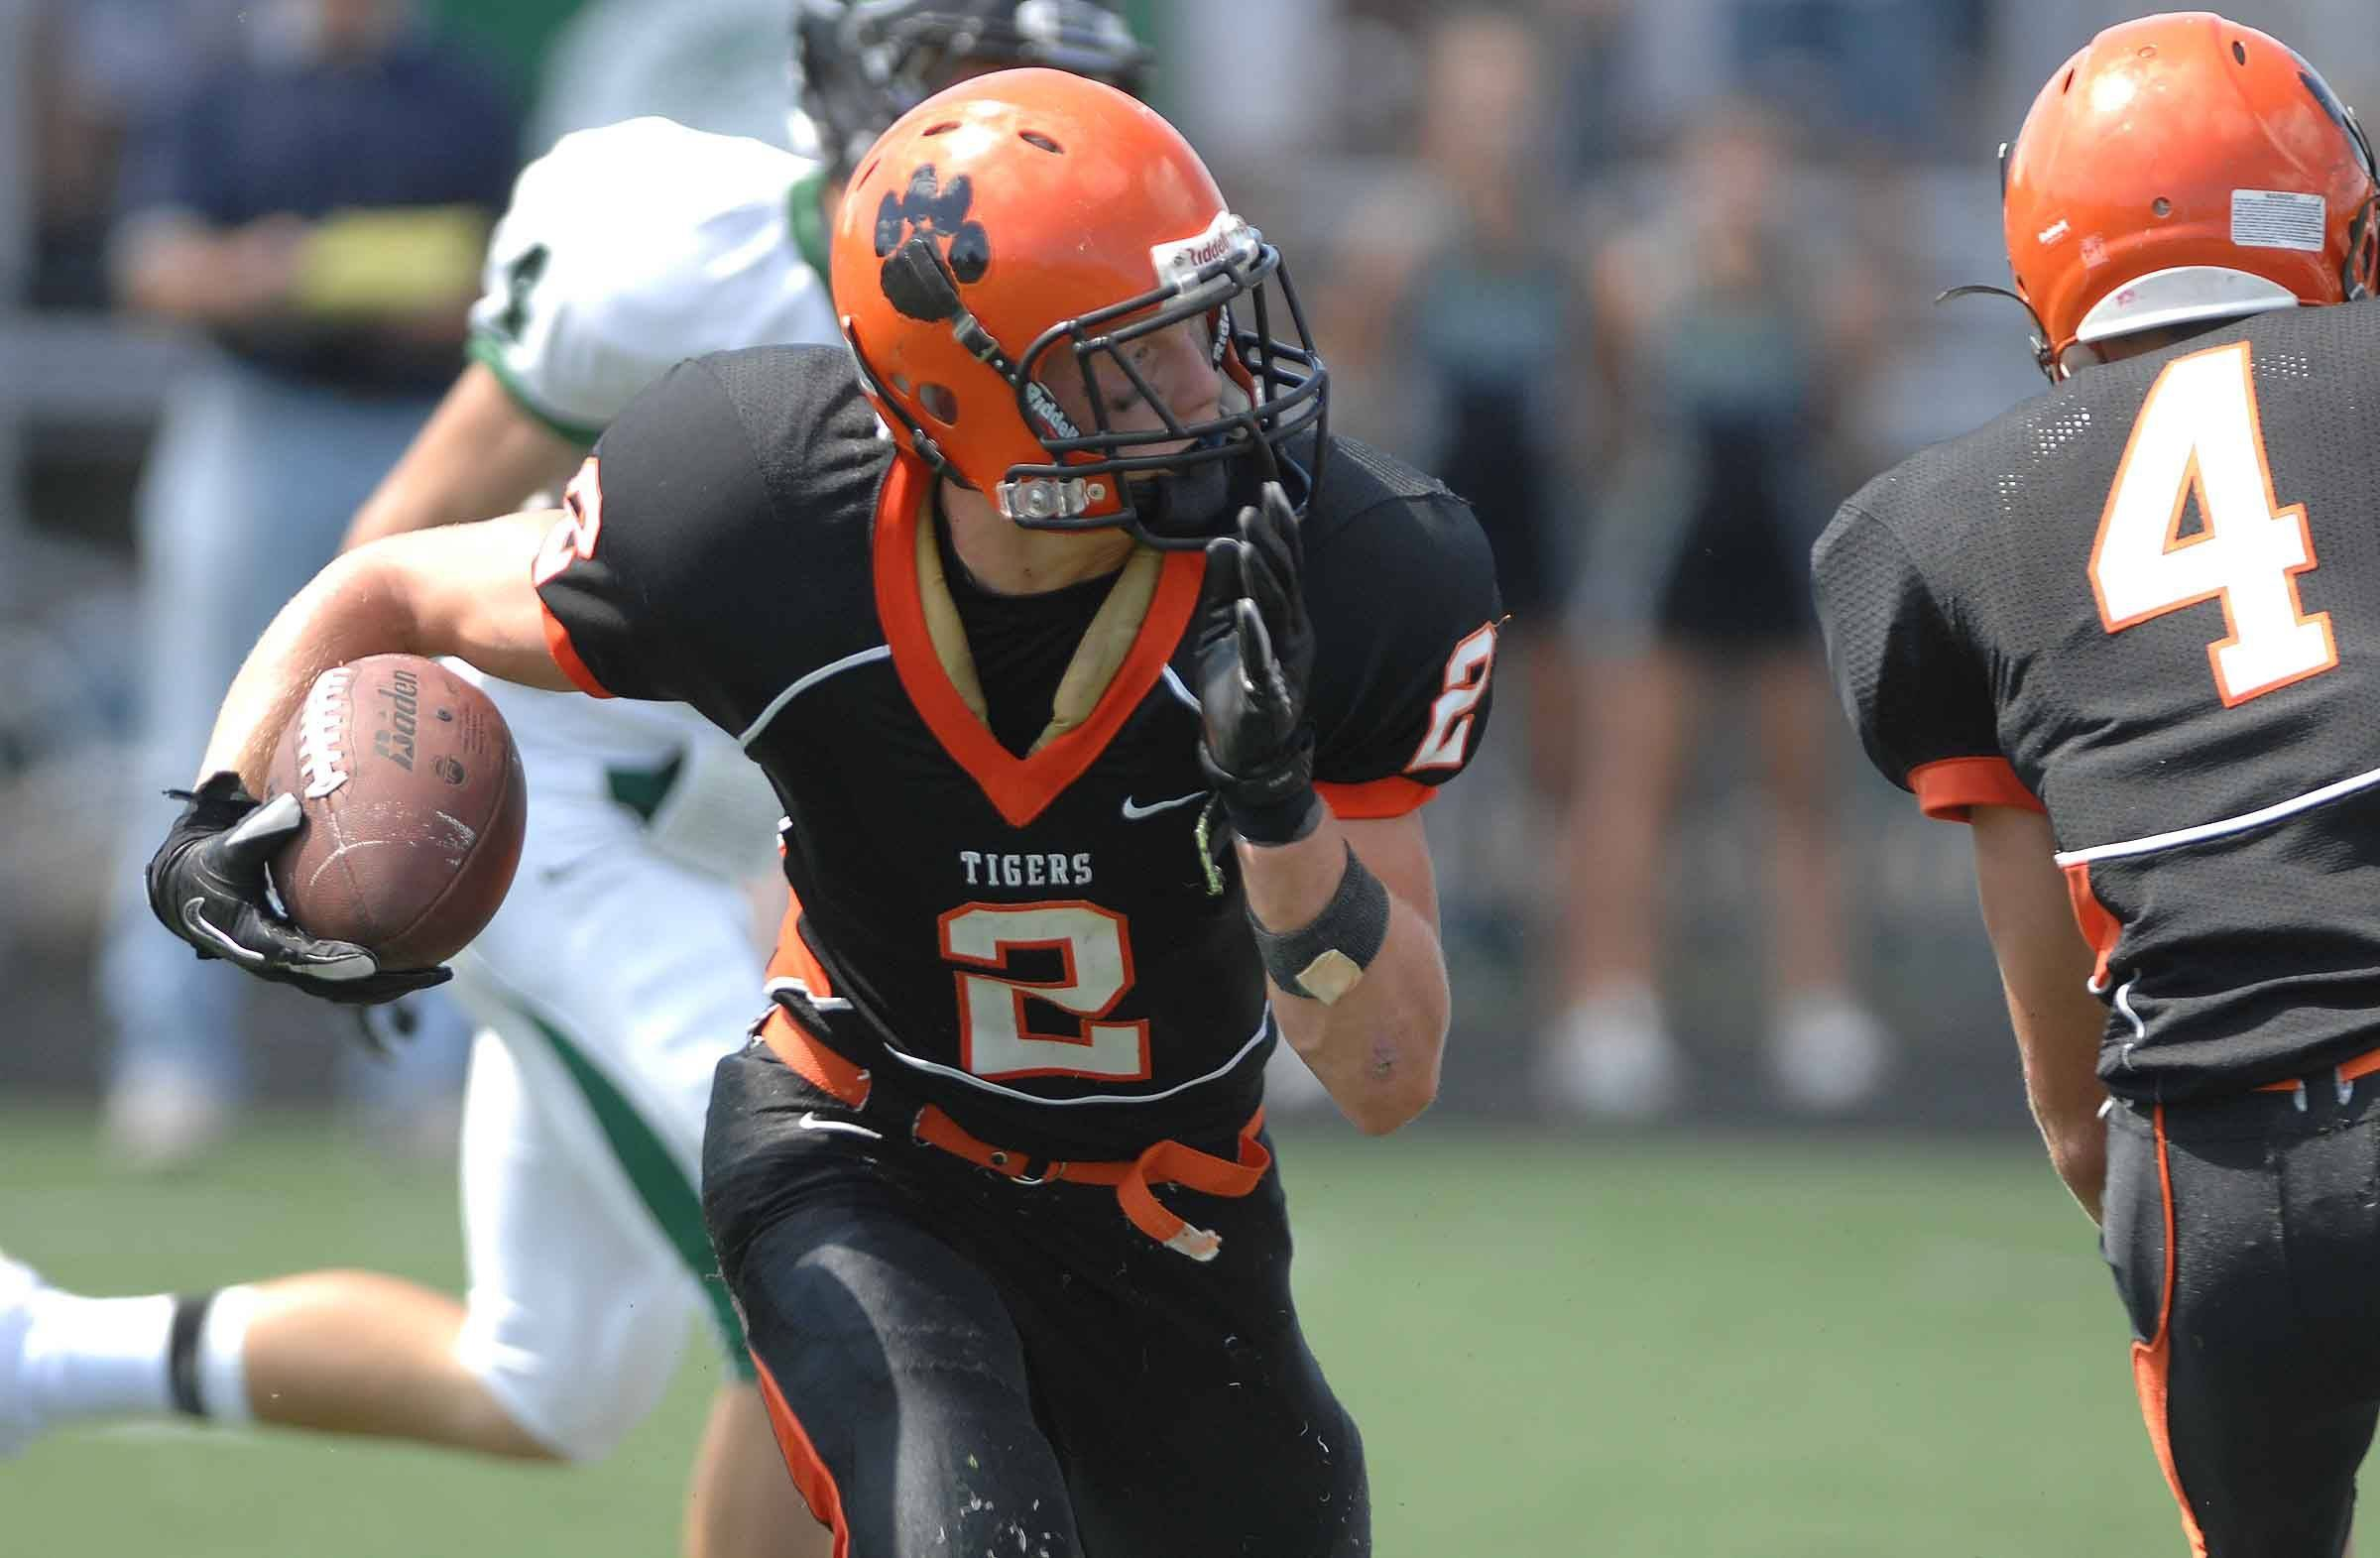 PAUL MICHNA/Pmichna@dailyherald.com  Mike Shelton of Wheaton moves the ball during the Glenbard West and Wheaton Warrenville South game Sunday.